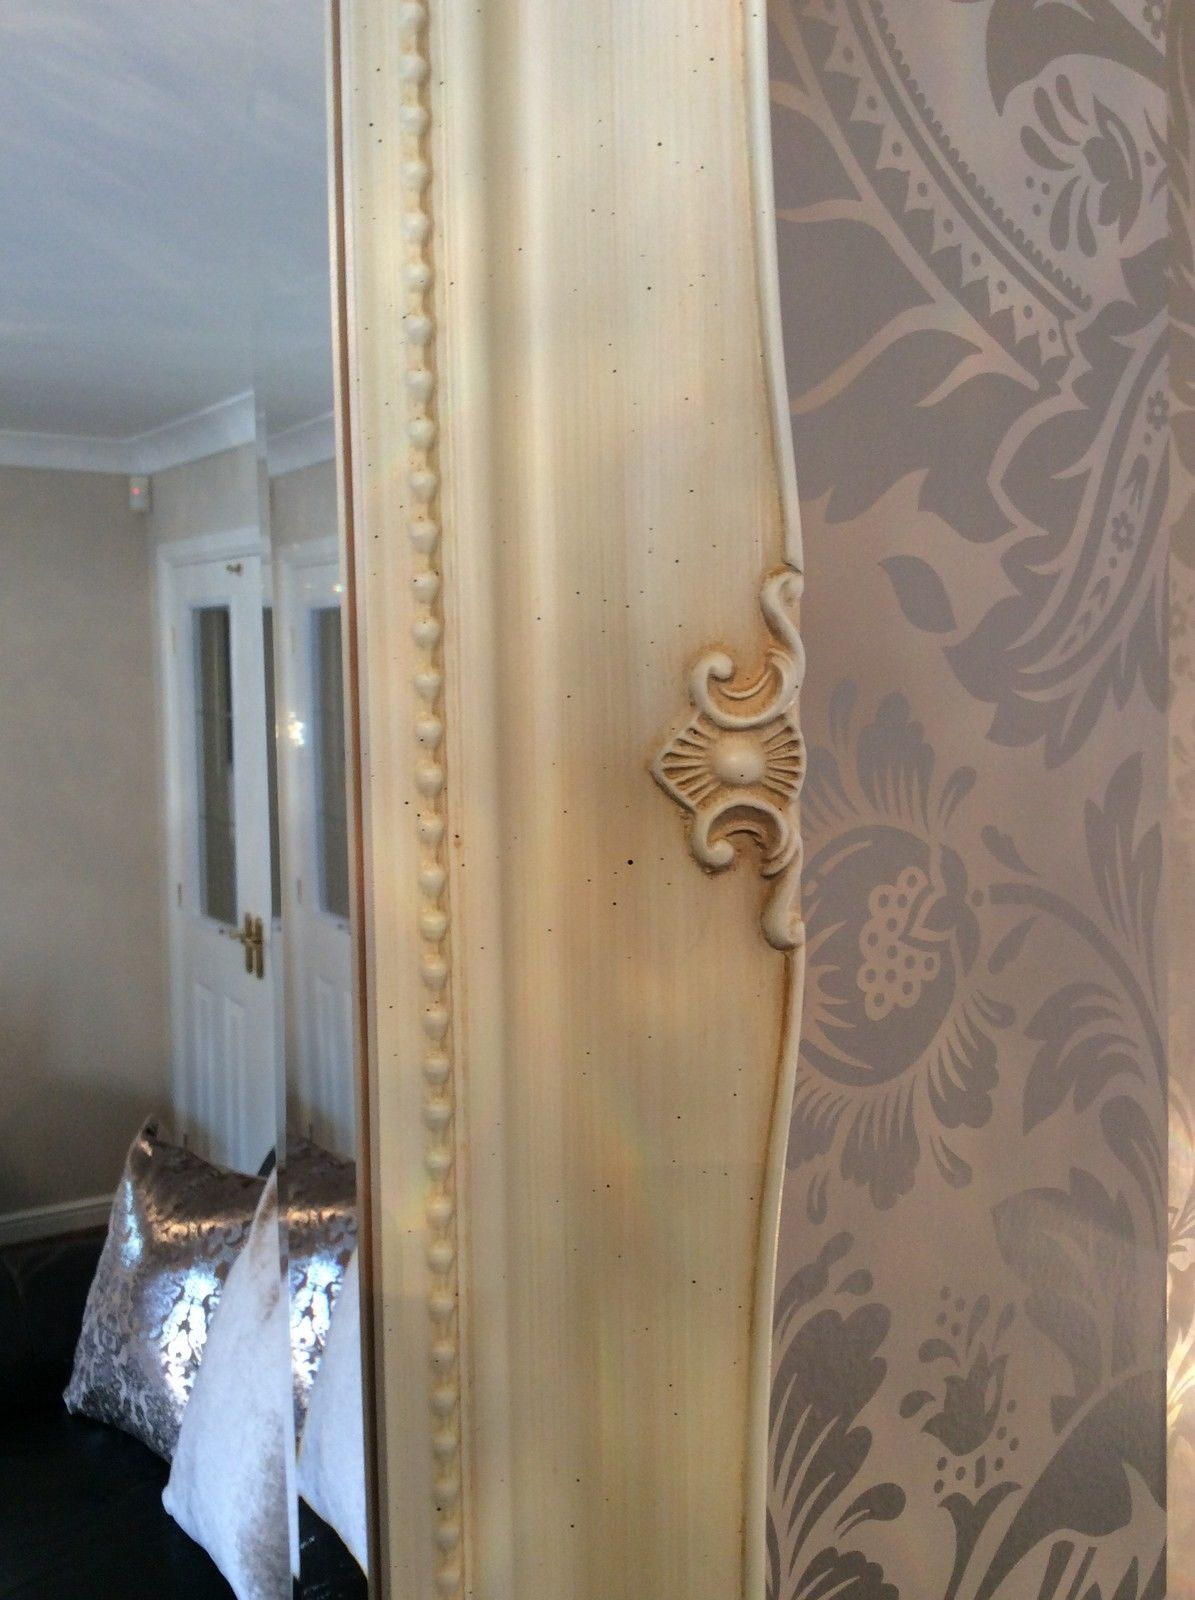 Ornate Cream Ivory Shab Chic French Inspired Mirror Bargain Throughout French Inspired Mirrors (Image 12 of 15)